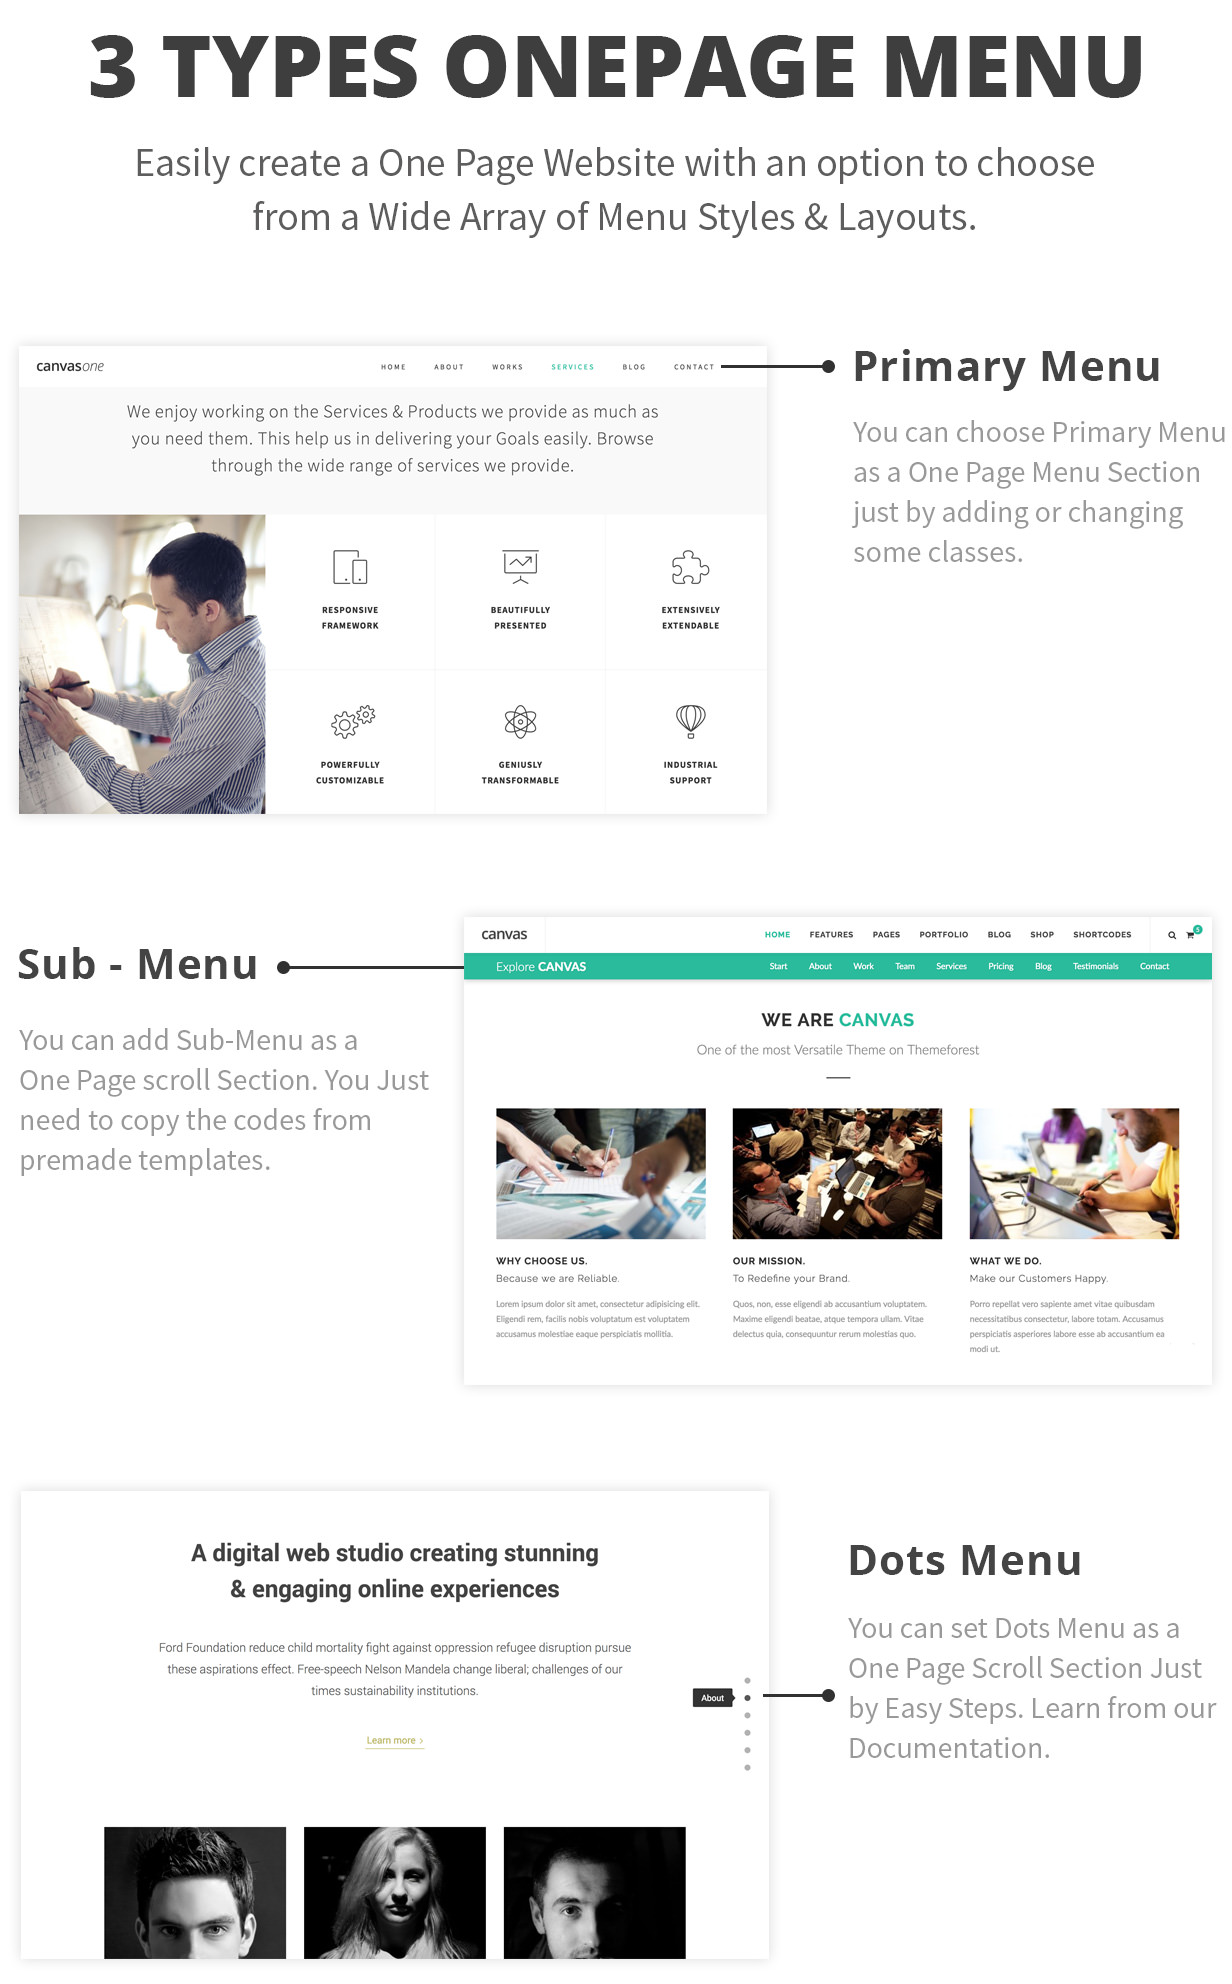 Canvas The Multi Purpose Html5 Template By Semicolonweb Themeforest Web Page Layout Diagram Showing How Different Component Html Files Onepage Options